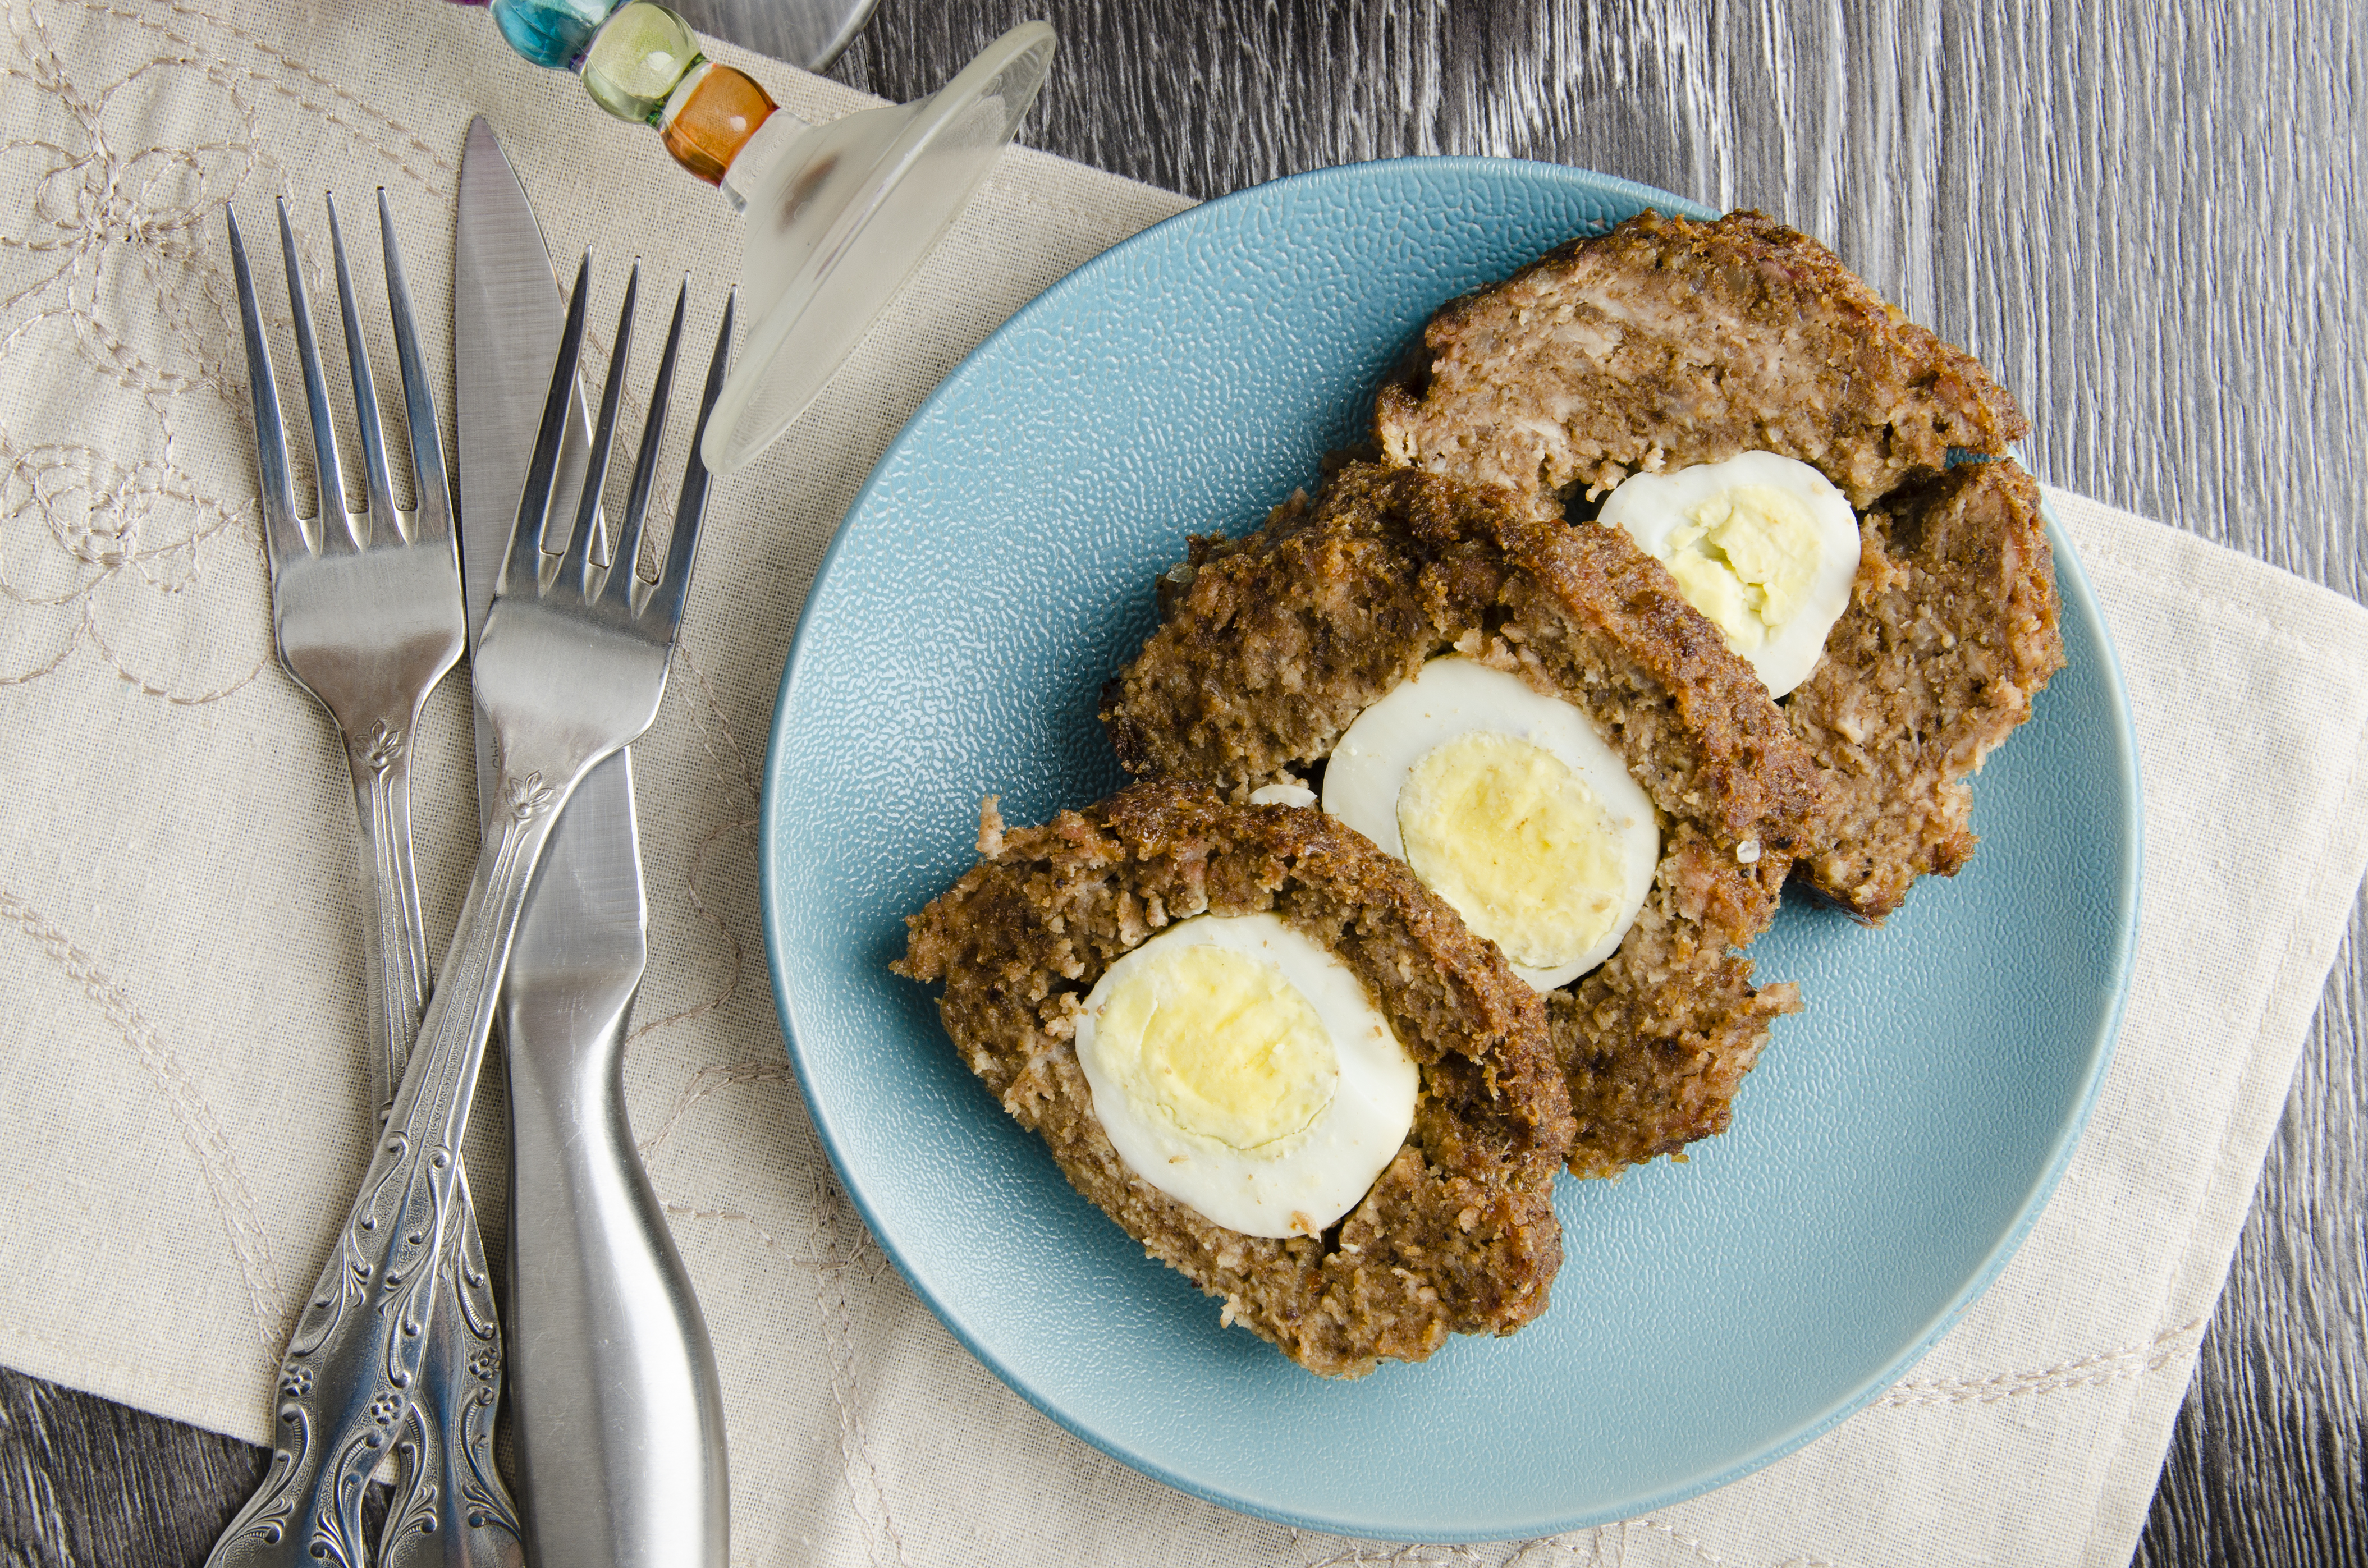 meatloaf,egg, food